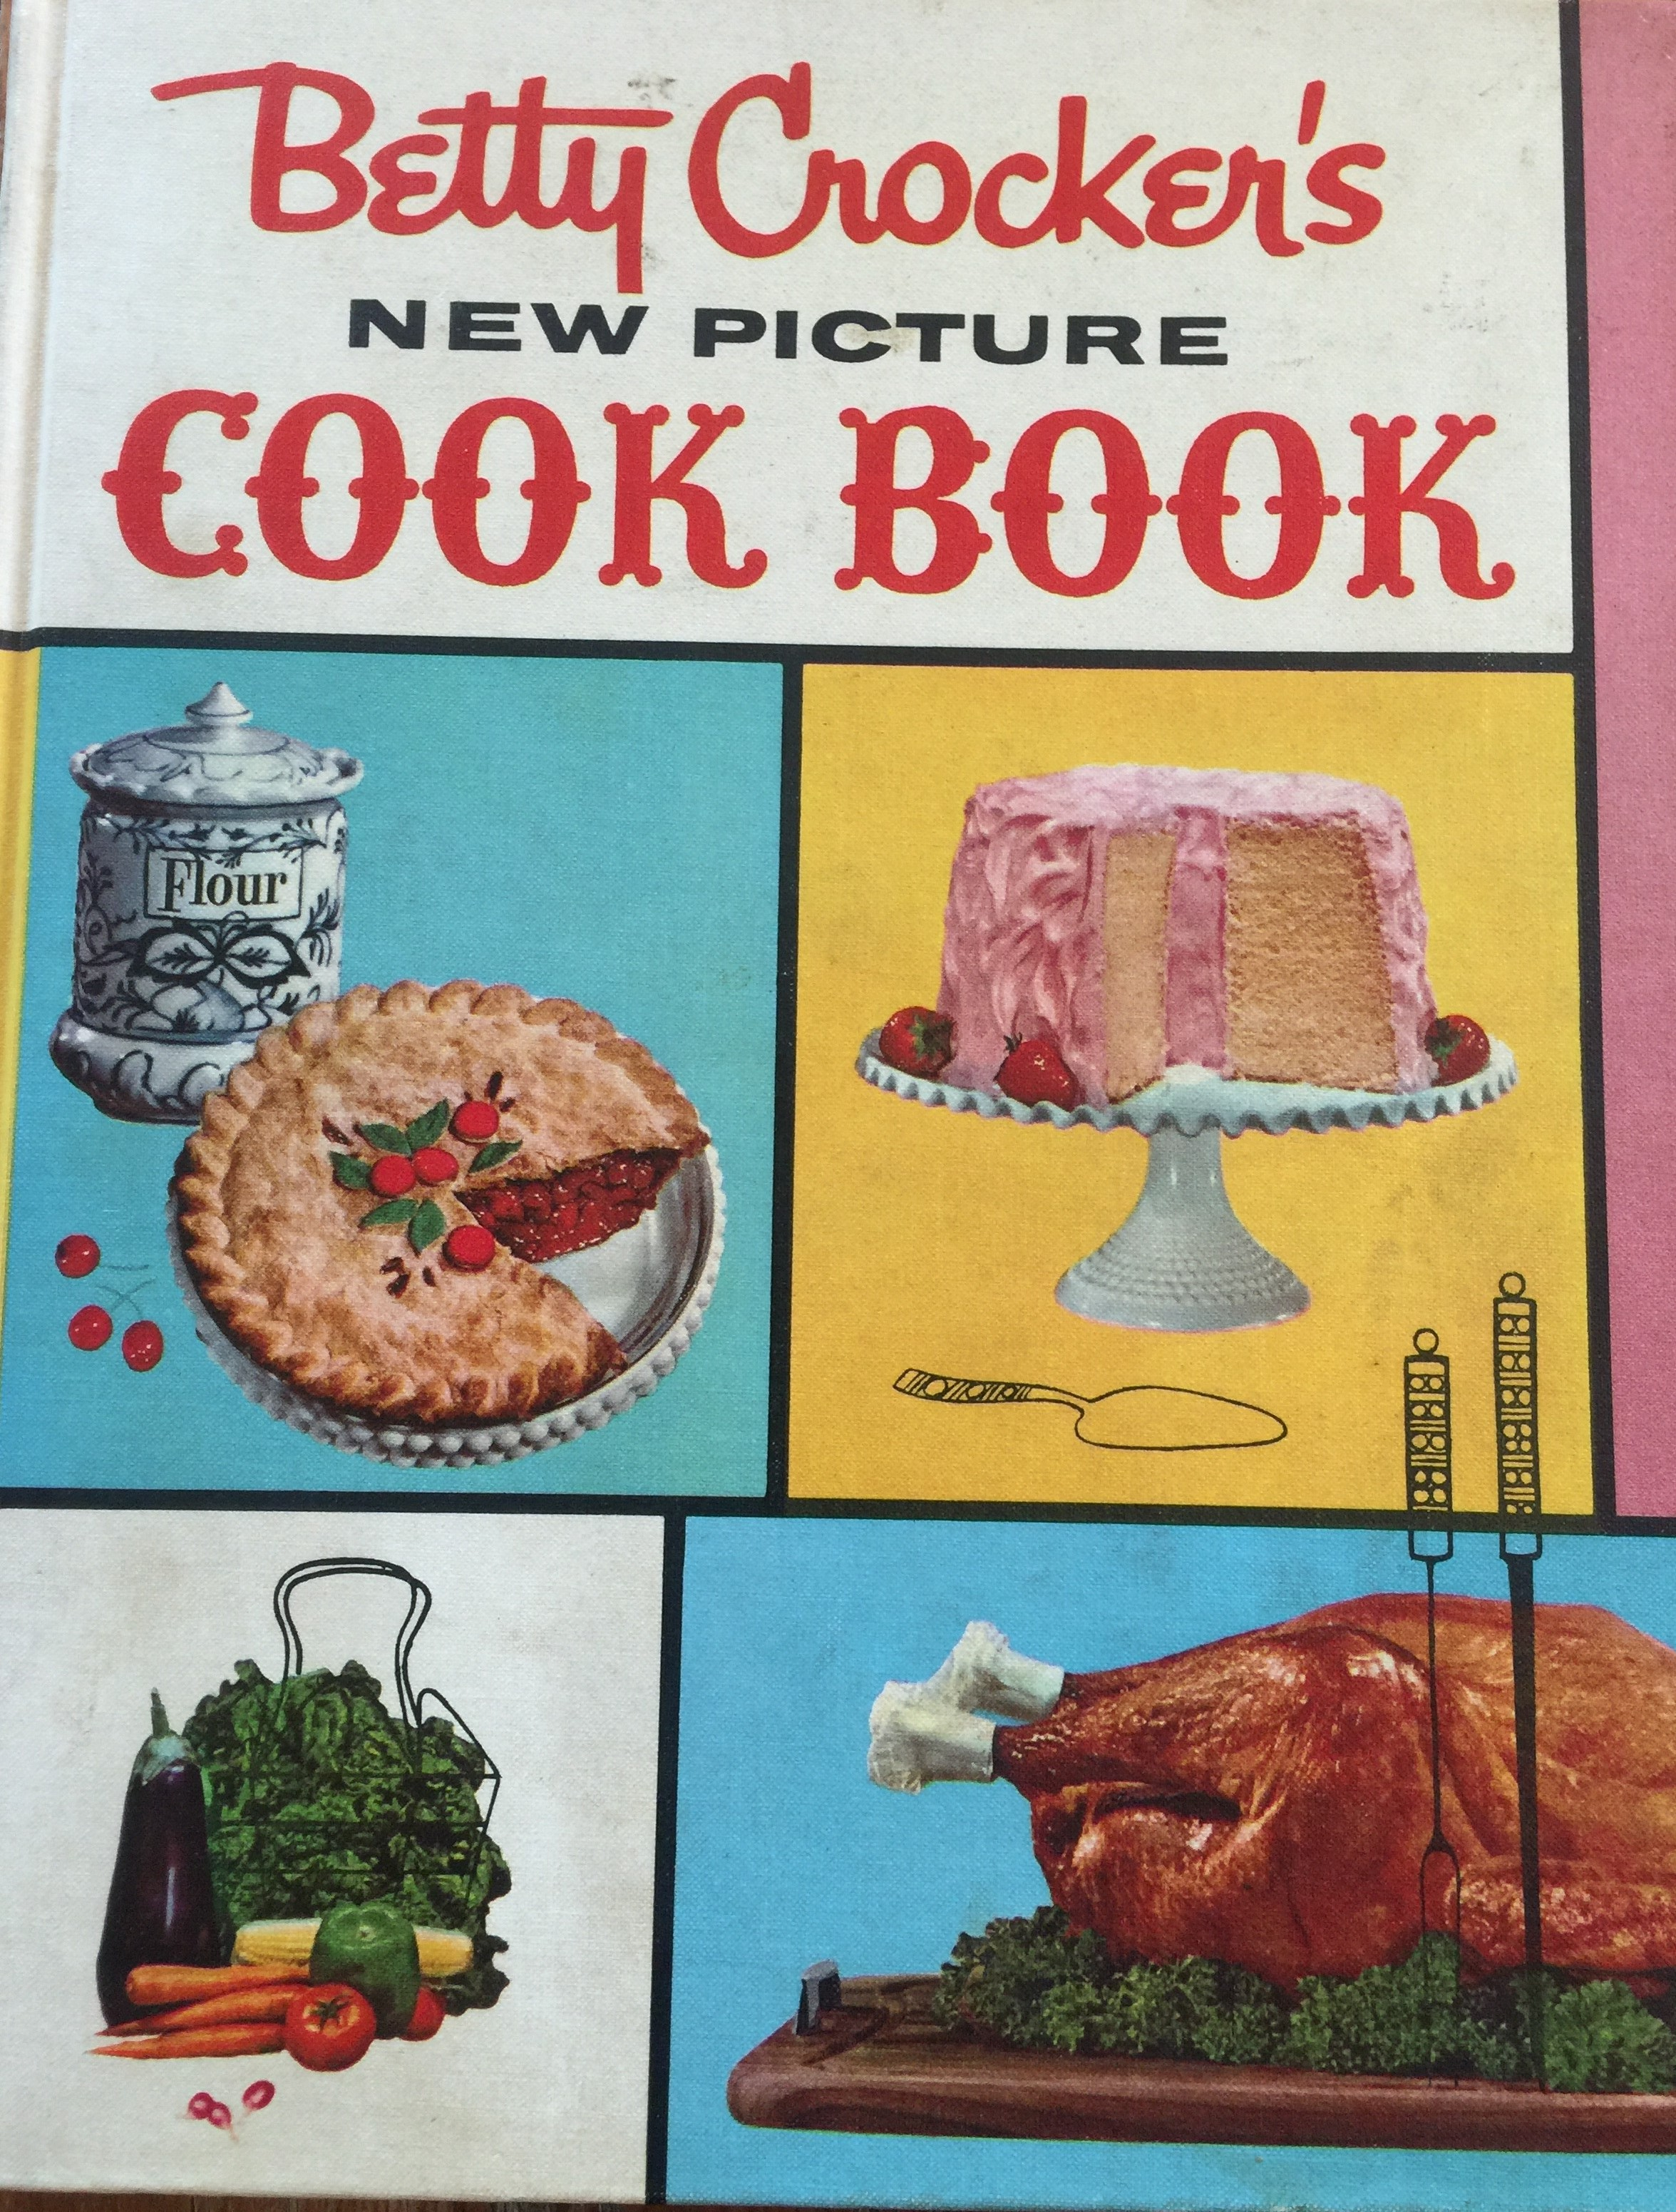 Betty Crocker New Picture Cookbook rotate.jpg